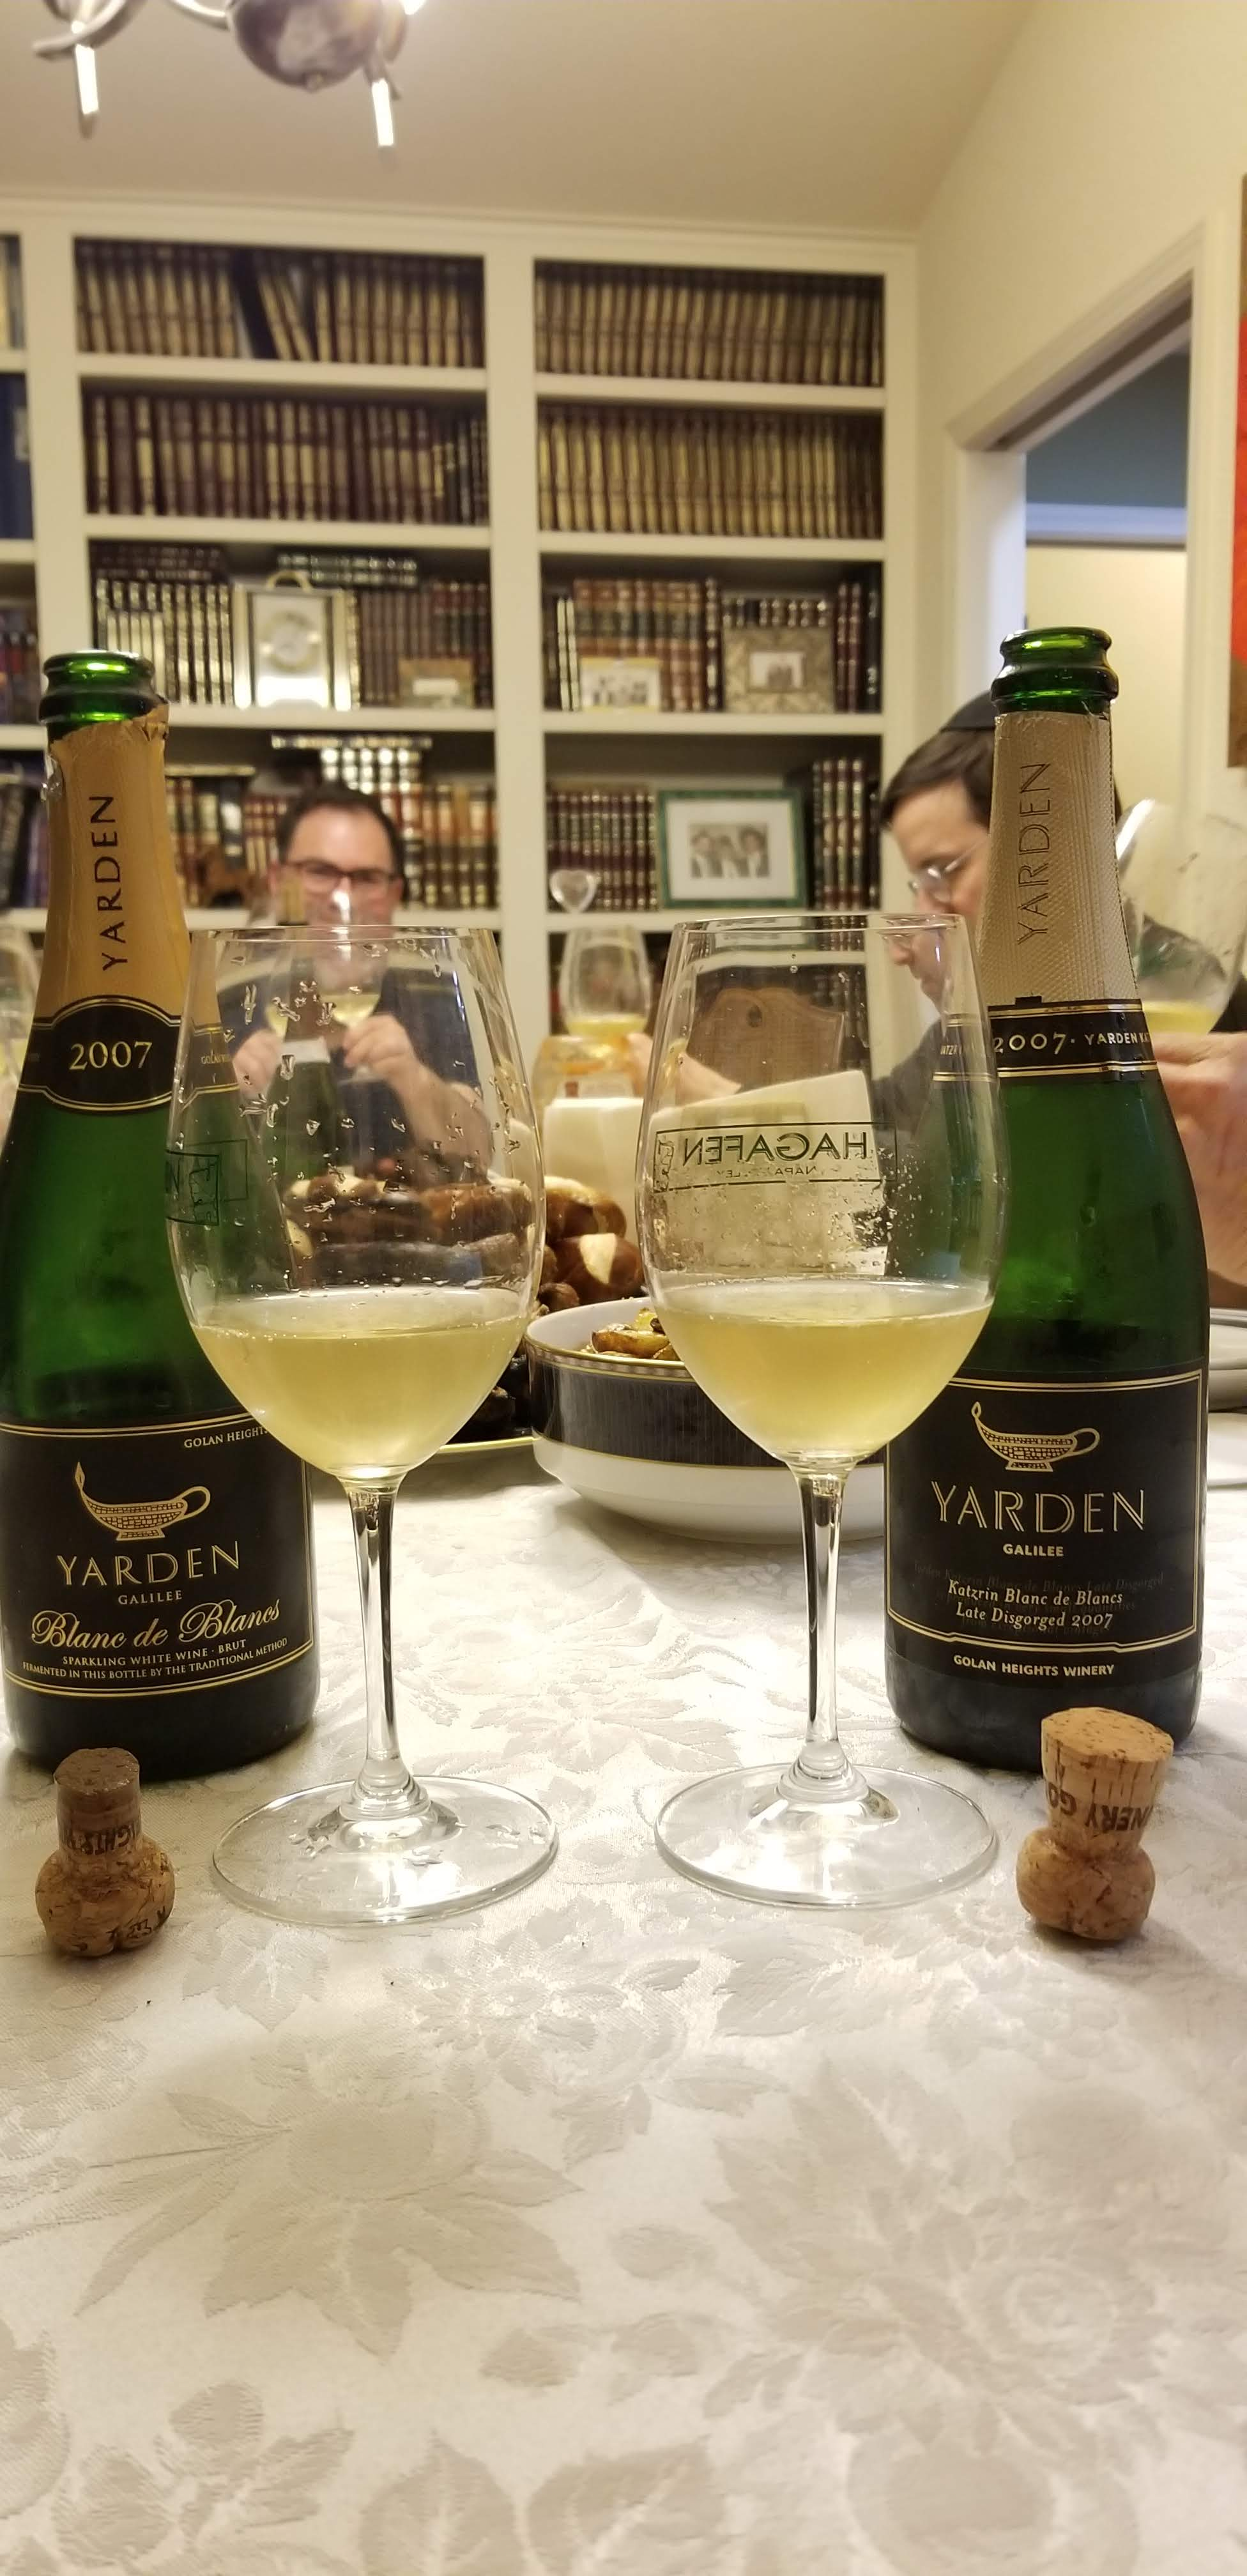 2007 Yarden Blanc de Blancs and 2007 Yarden Blanc de Blancs late disgorged side by side